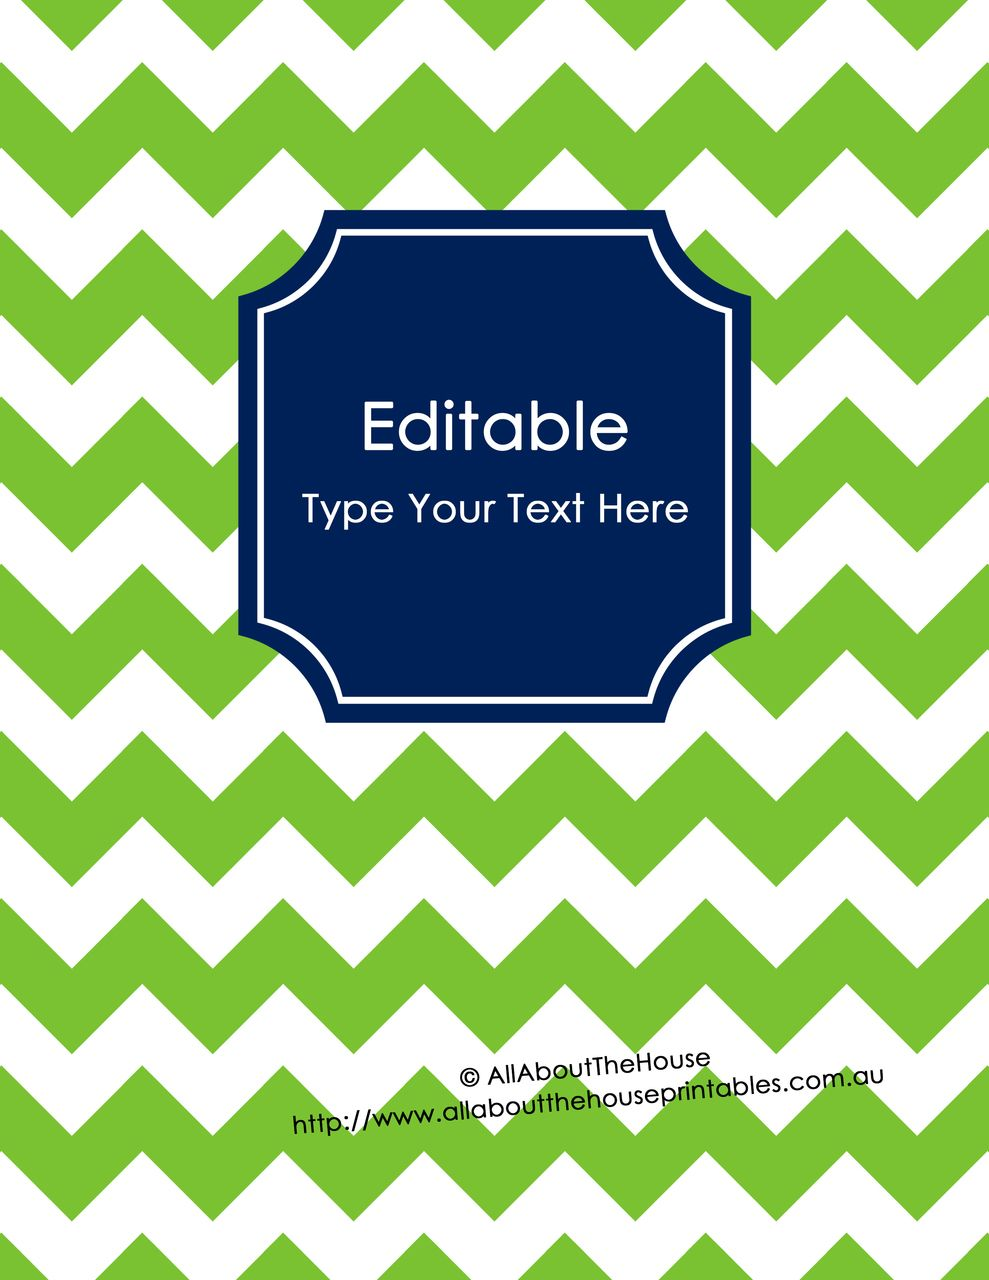 editable binder cover - letter size  8 5 x 11 u0026quot